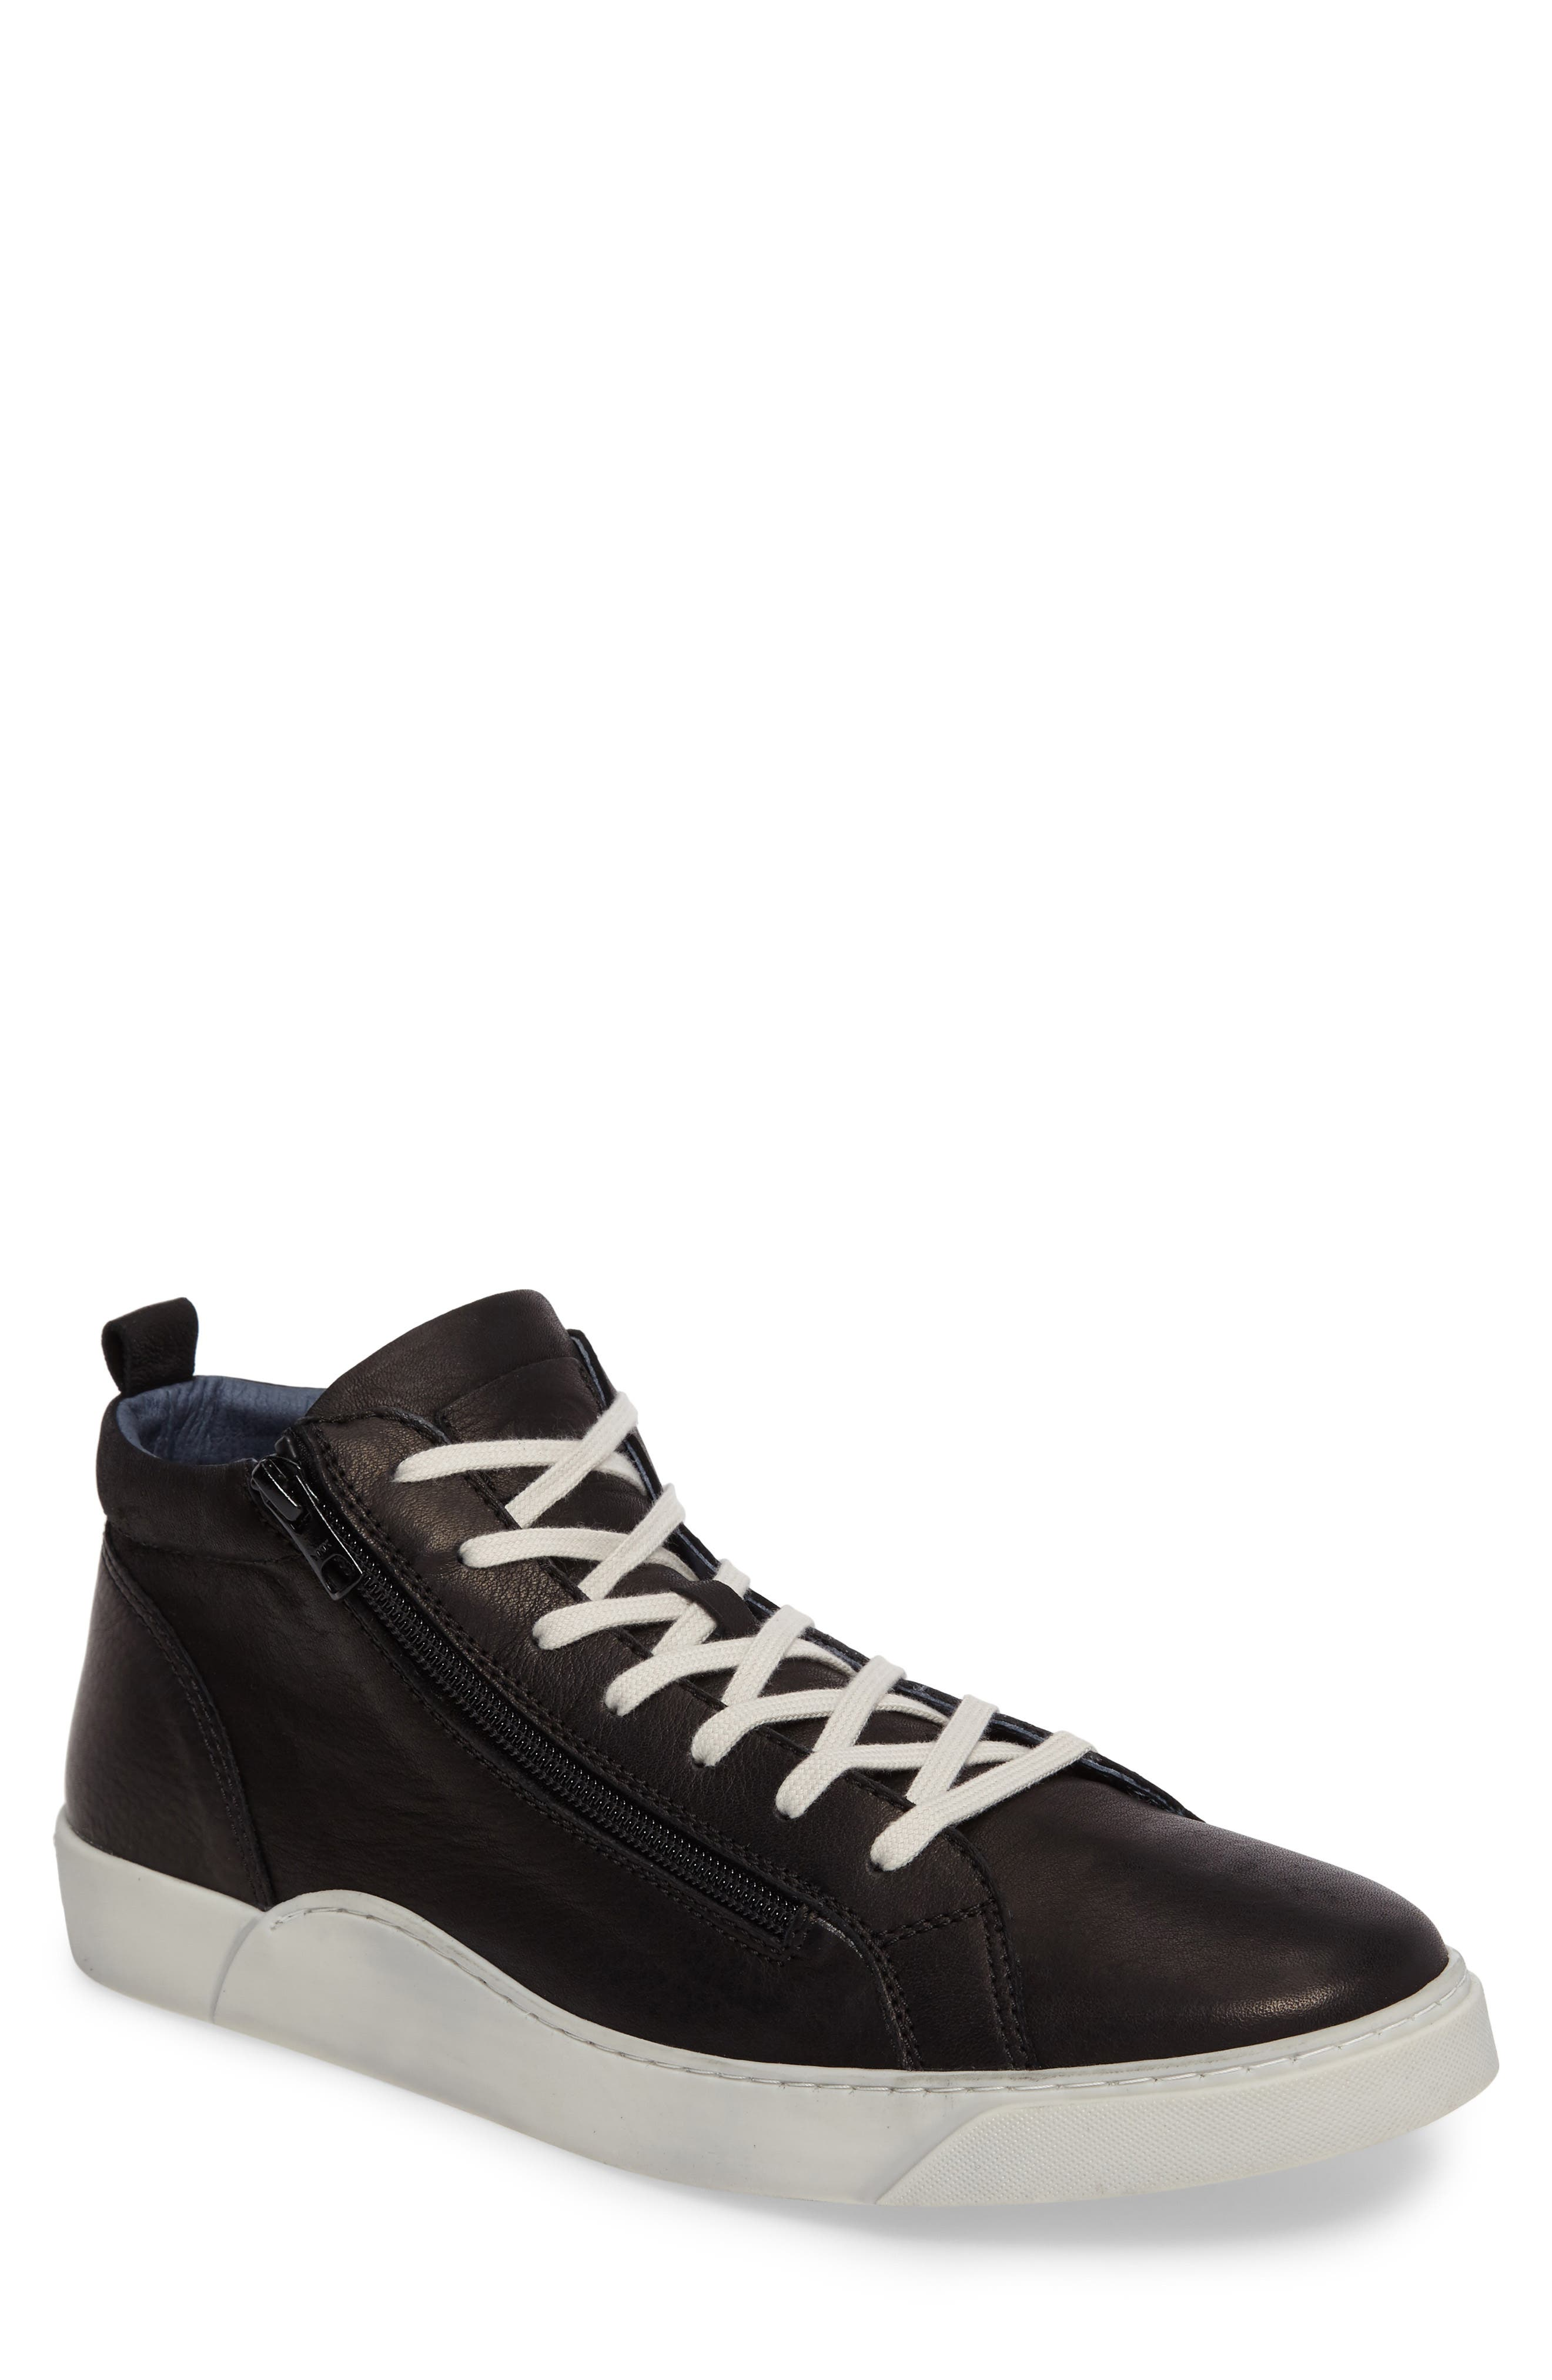 Irwin Mid Top Sneaker,                             Main thumbnail 1, color,                             Black Leather